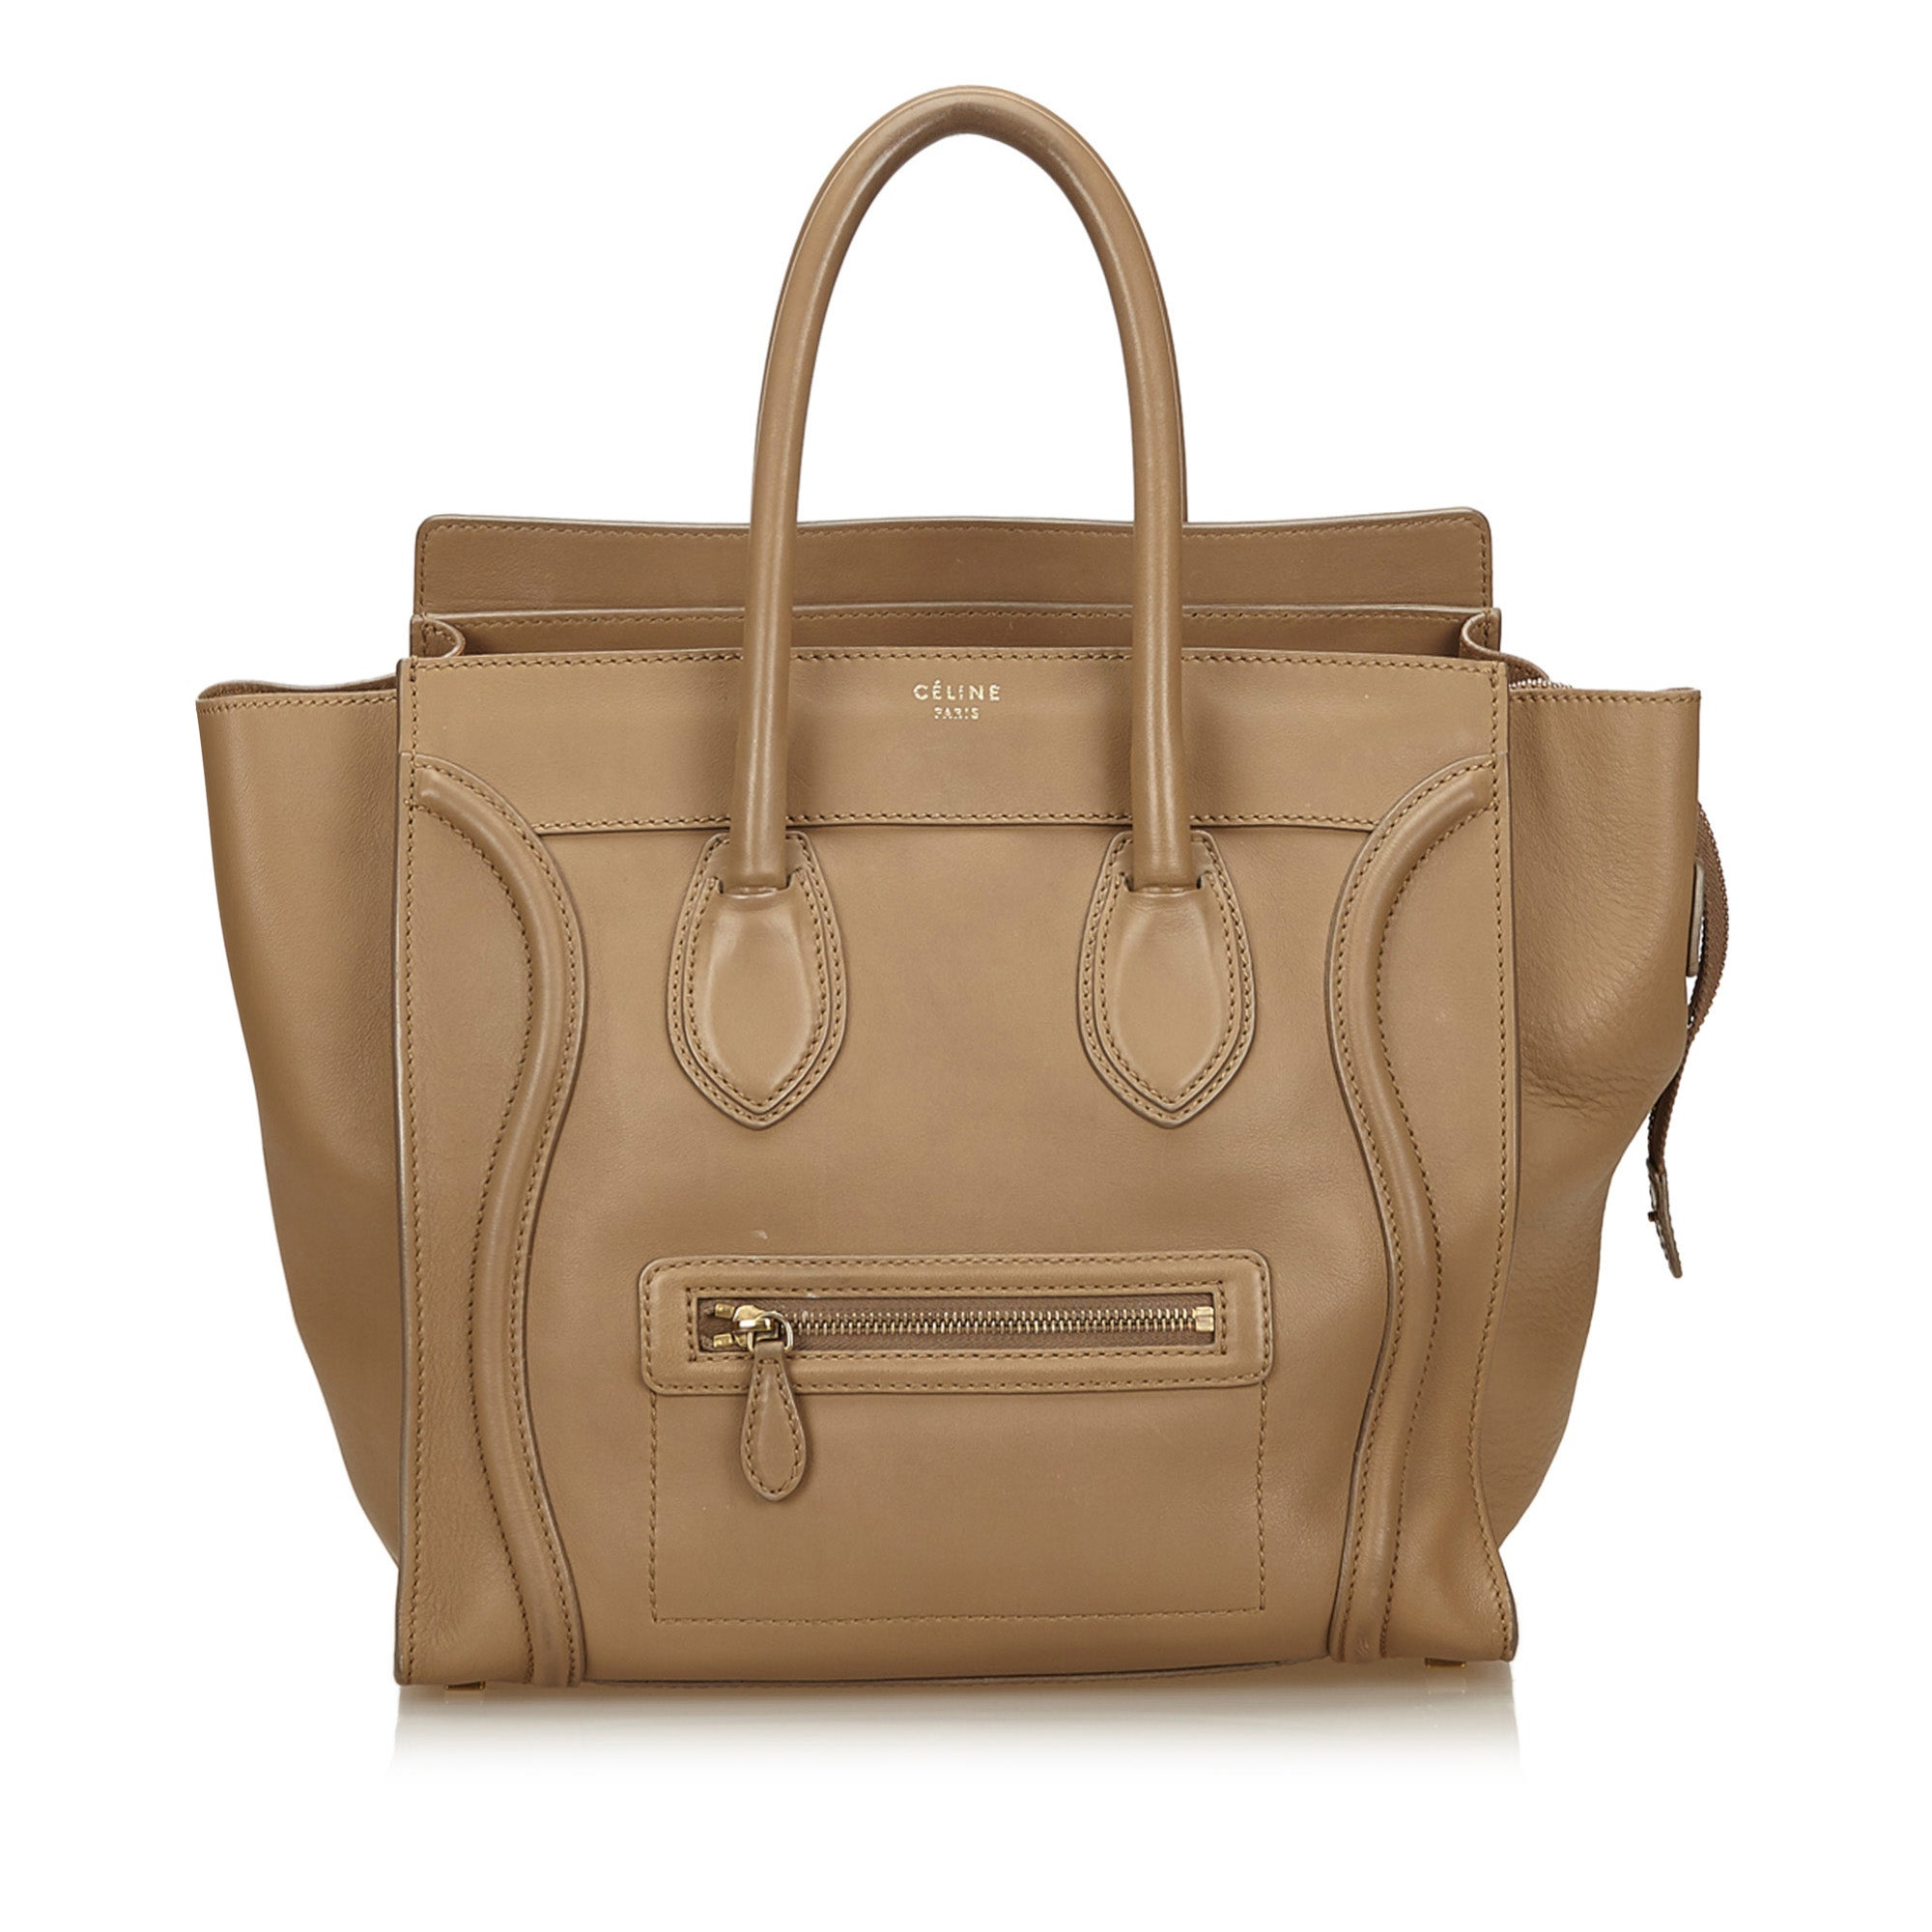 Celine Mini Luggage Tote - Olive Street